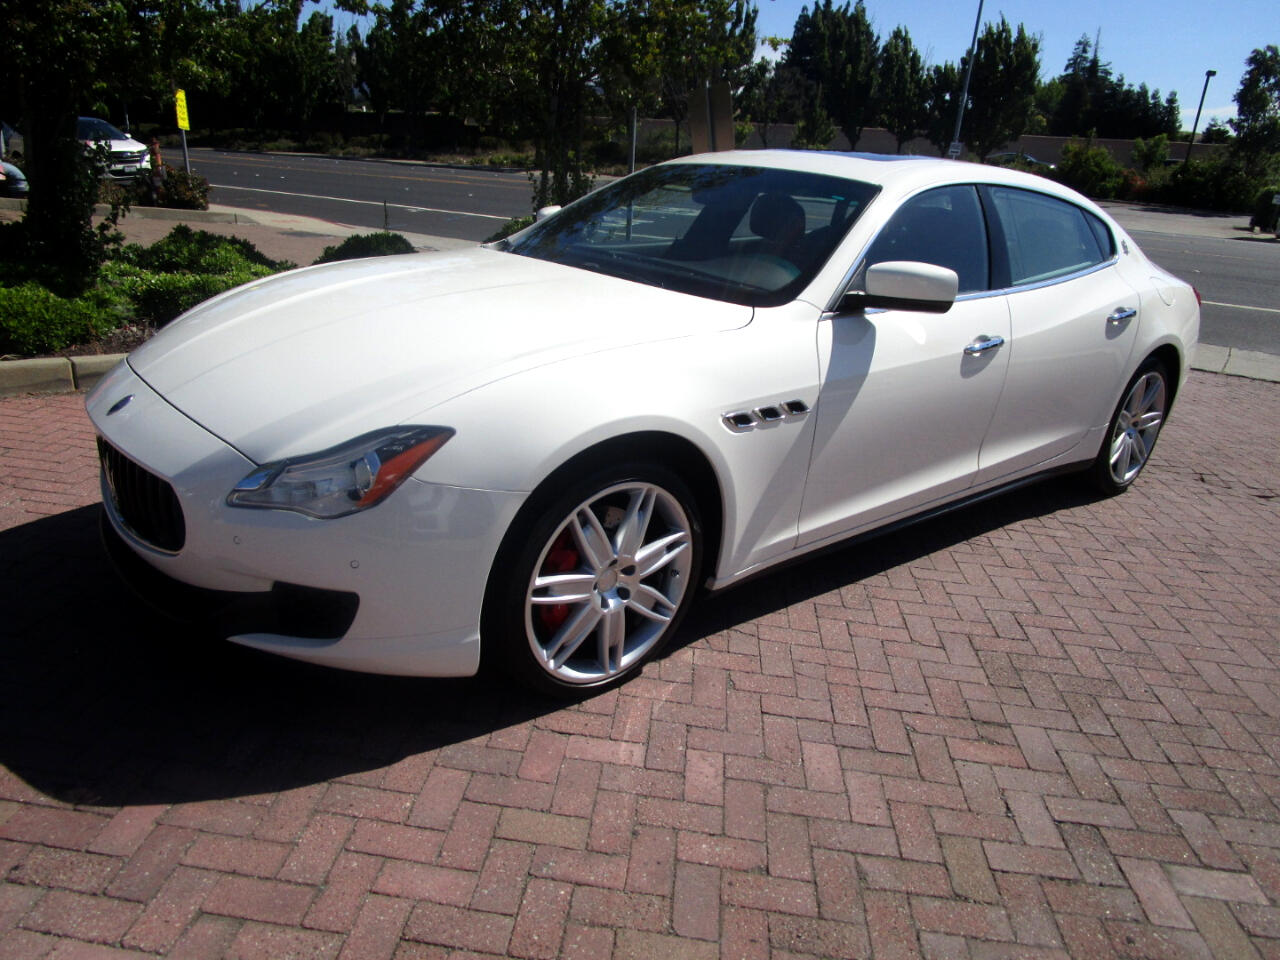 2015 Maserati Quattroporte SQ4 TURBO QUATTRO*HEAT SEATS*NAV*SAT RADIO*REAR CA